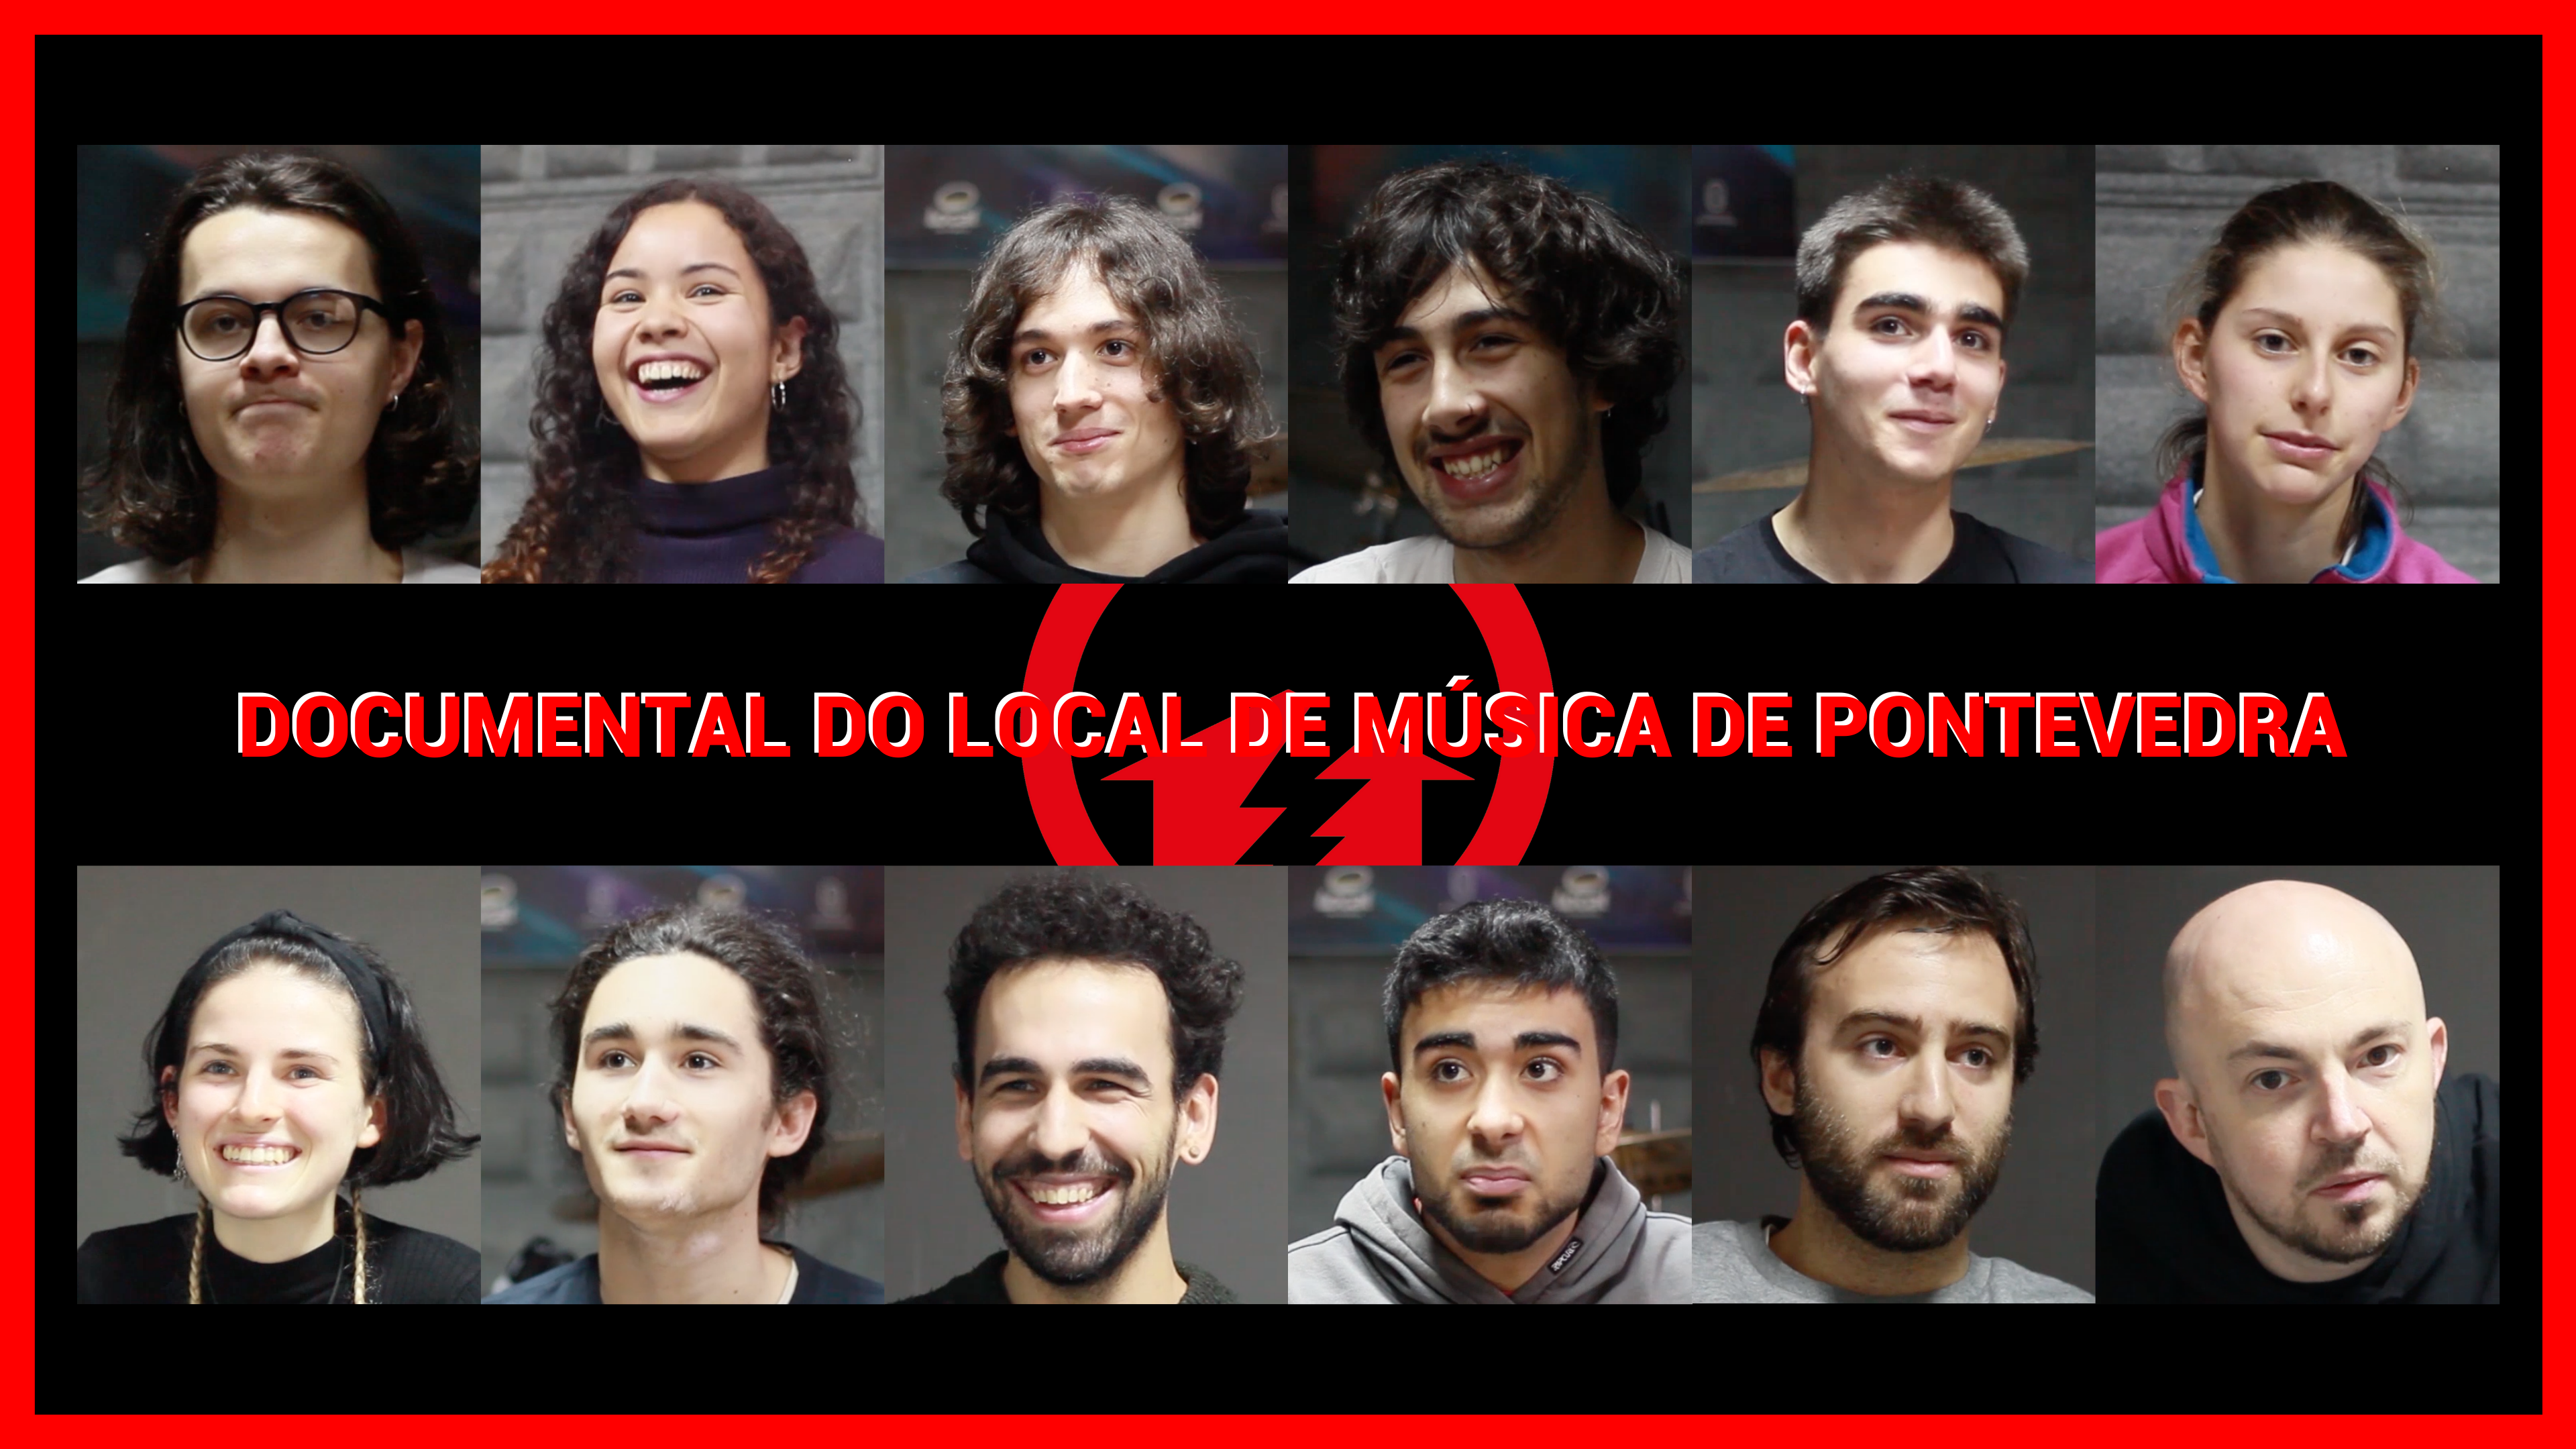 Documental do Local de música de Pontevedra